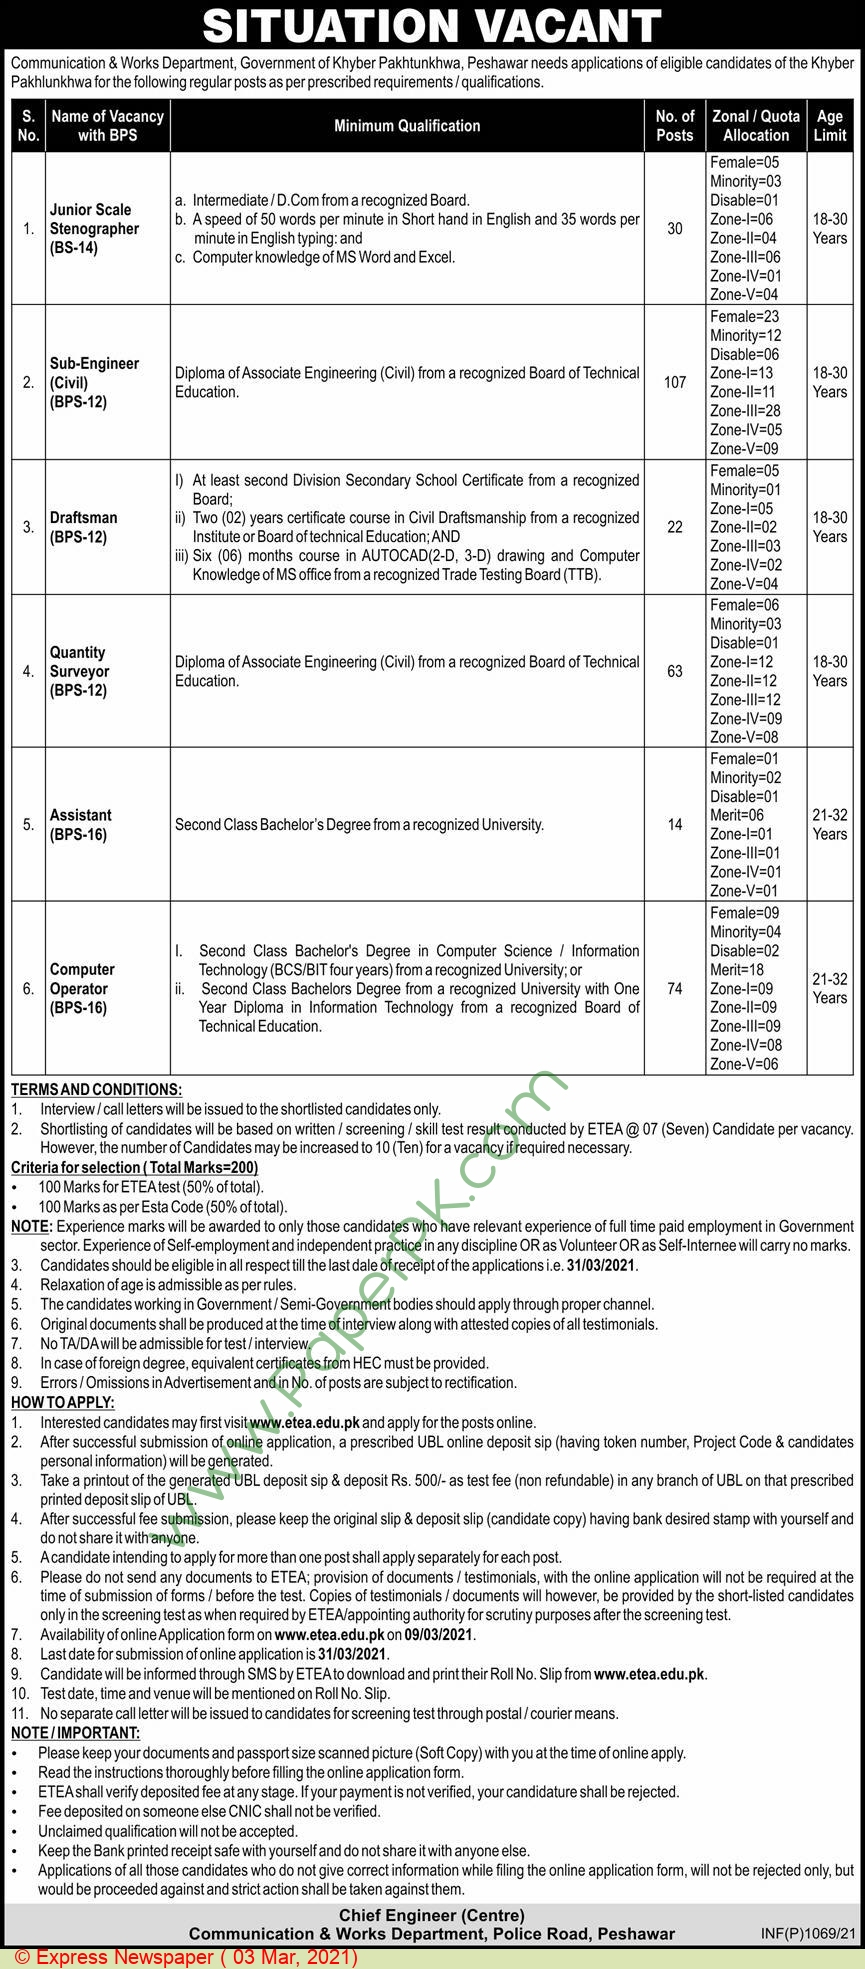 Communication & Works Department jobs newspaper ad for Computer Operator in Peshawar on 2021-03-03